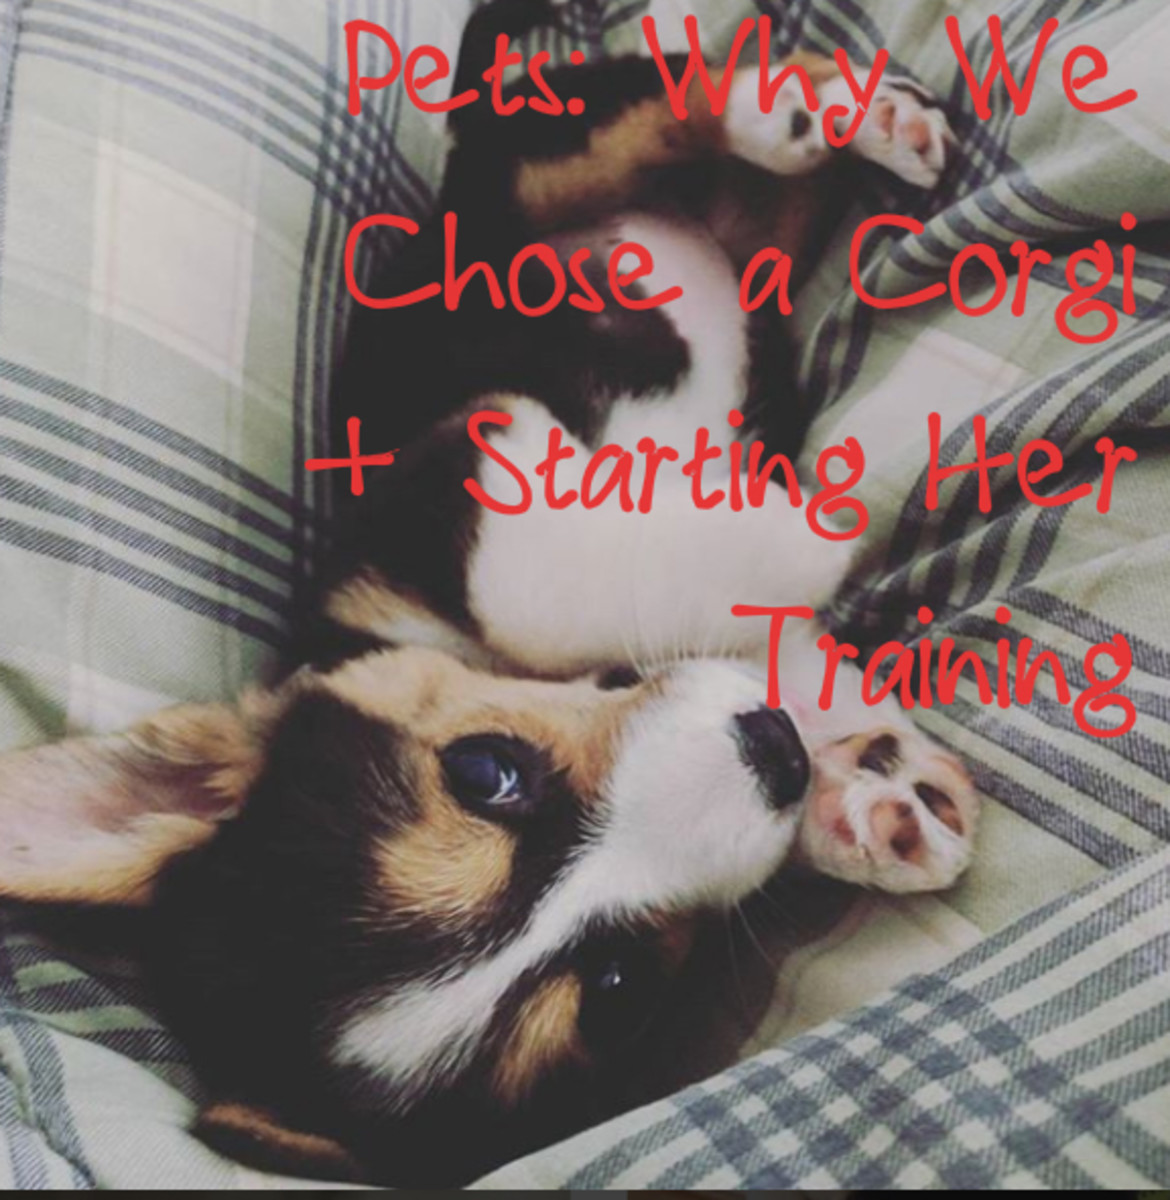 Why We Chose a Corgi and How We Trained Our Puppy